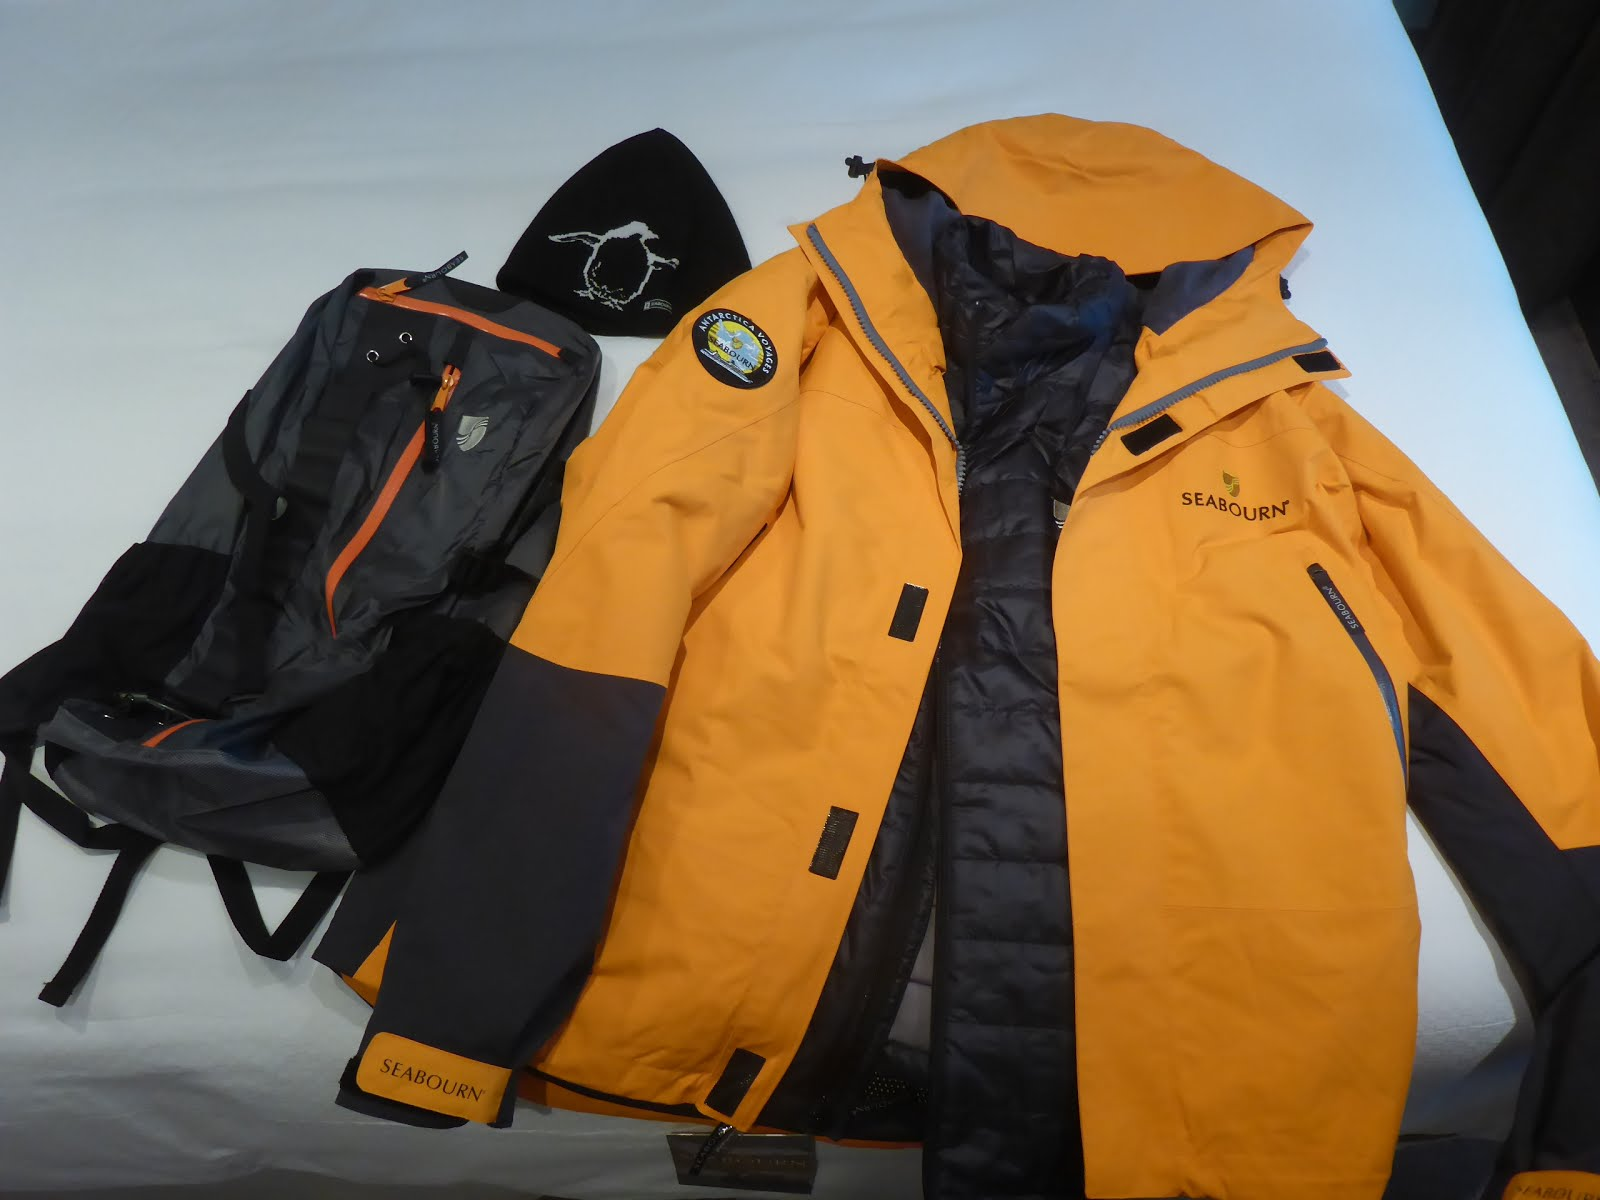 48c6d9ffefec Seabourn provides each guest traveling to Antarctica and Patagonia with a  high quality jacket